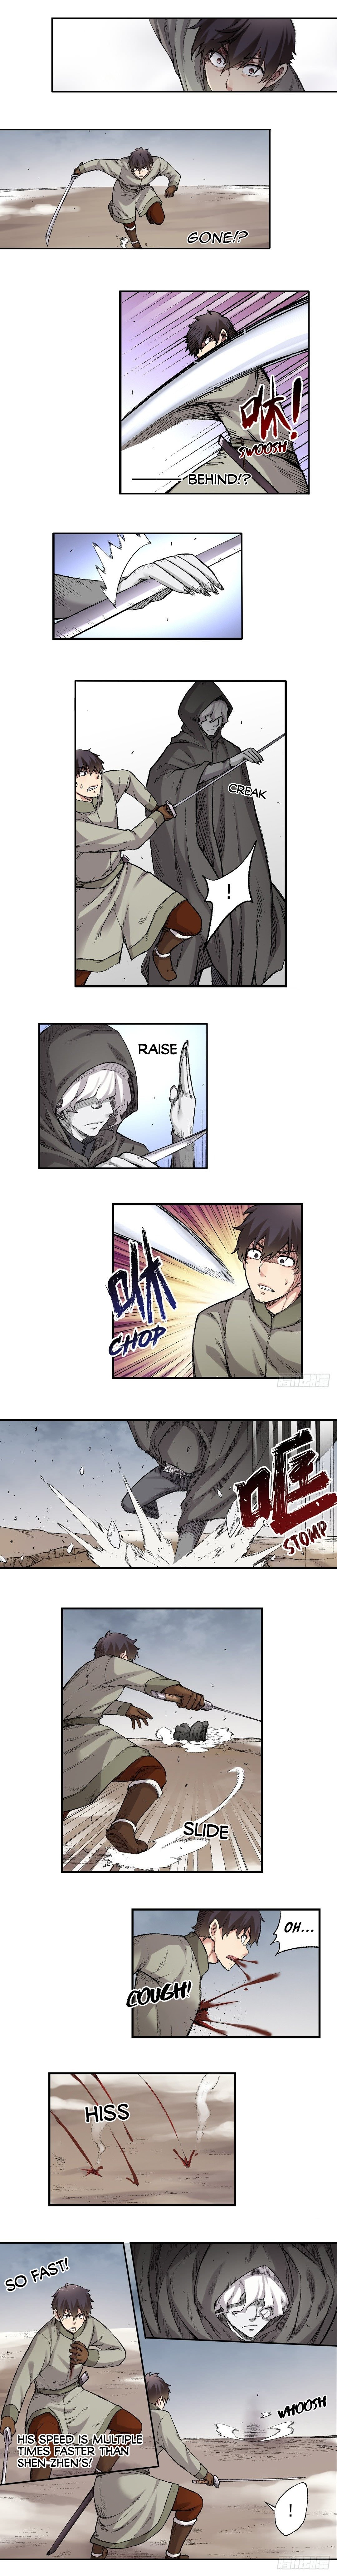 Manga Because I'm An Uncle who Runs A Weapon Shop - Chapter 65 Page 5